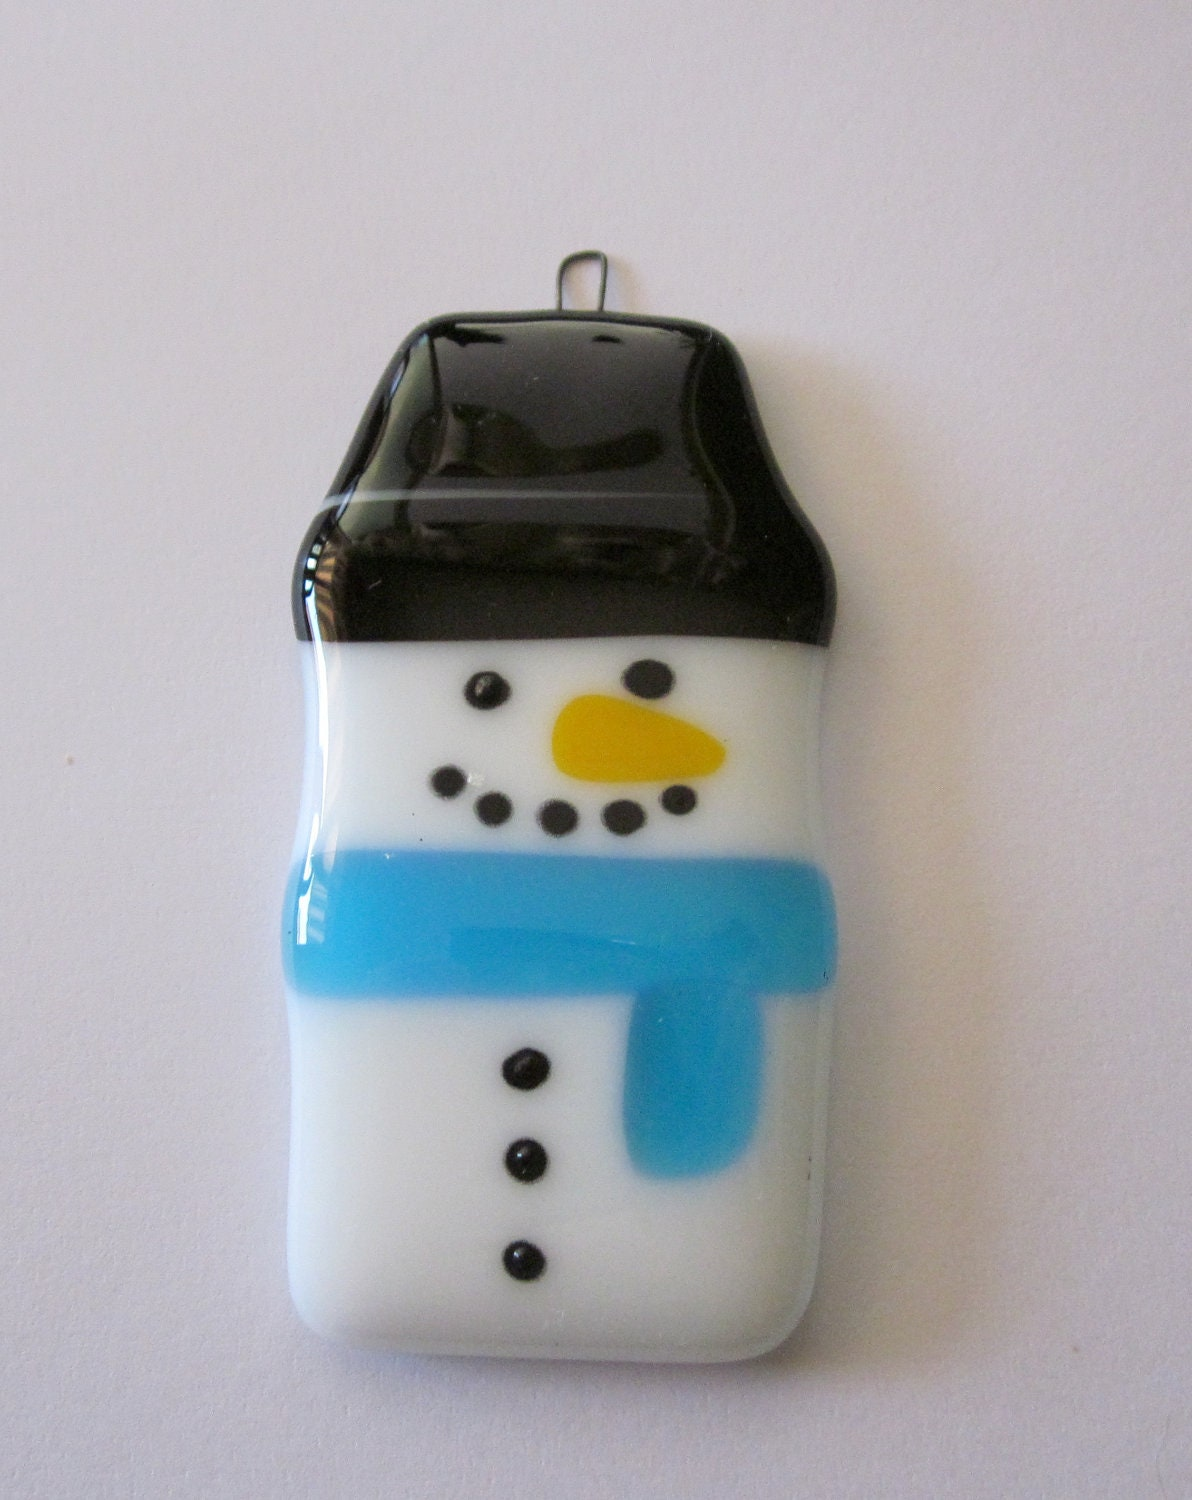 Clearance sale fused glass christmas snowman ornament for Christmas ornament sale clearance